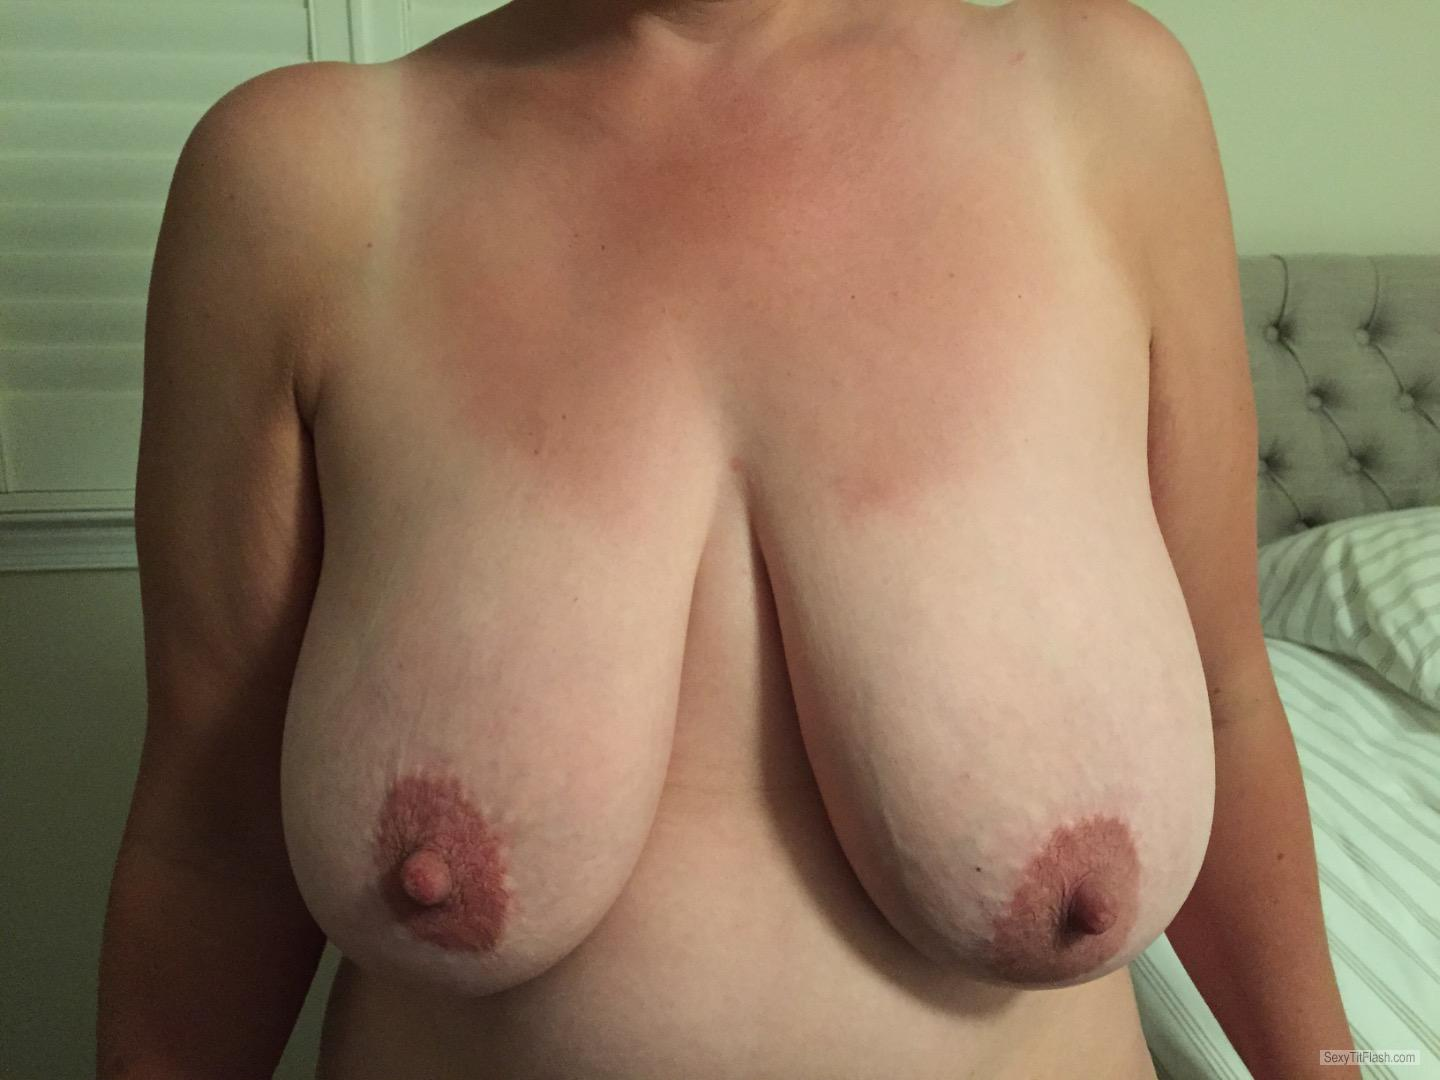 Tit Flash: My Tanlined Very Big Tits - JJ from United States